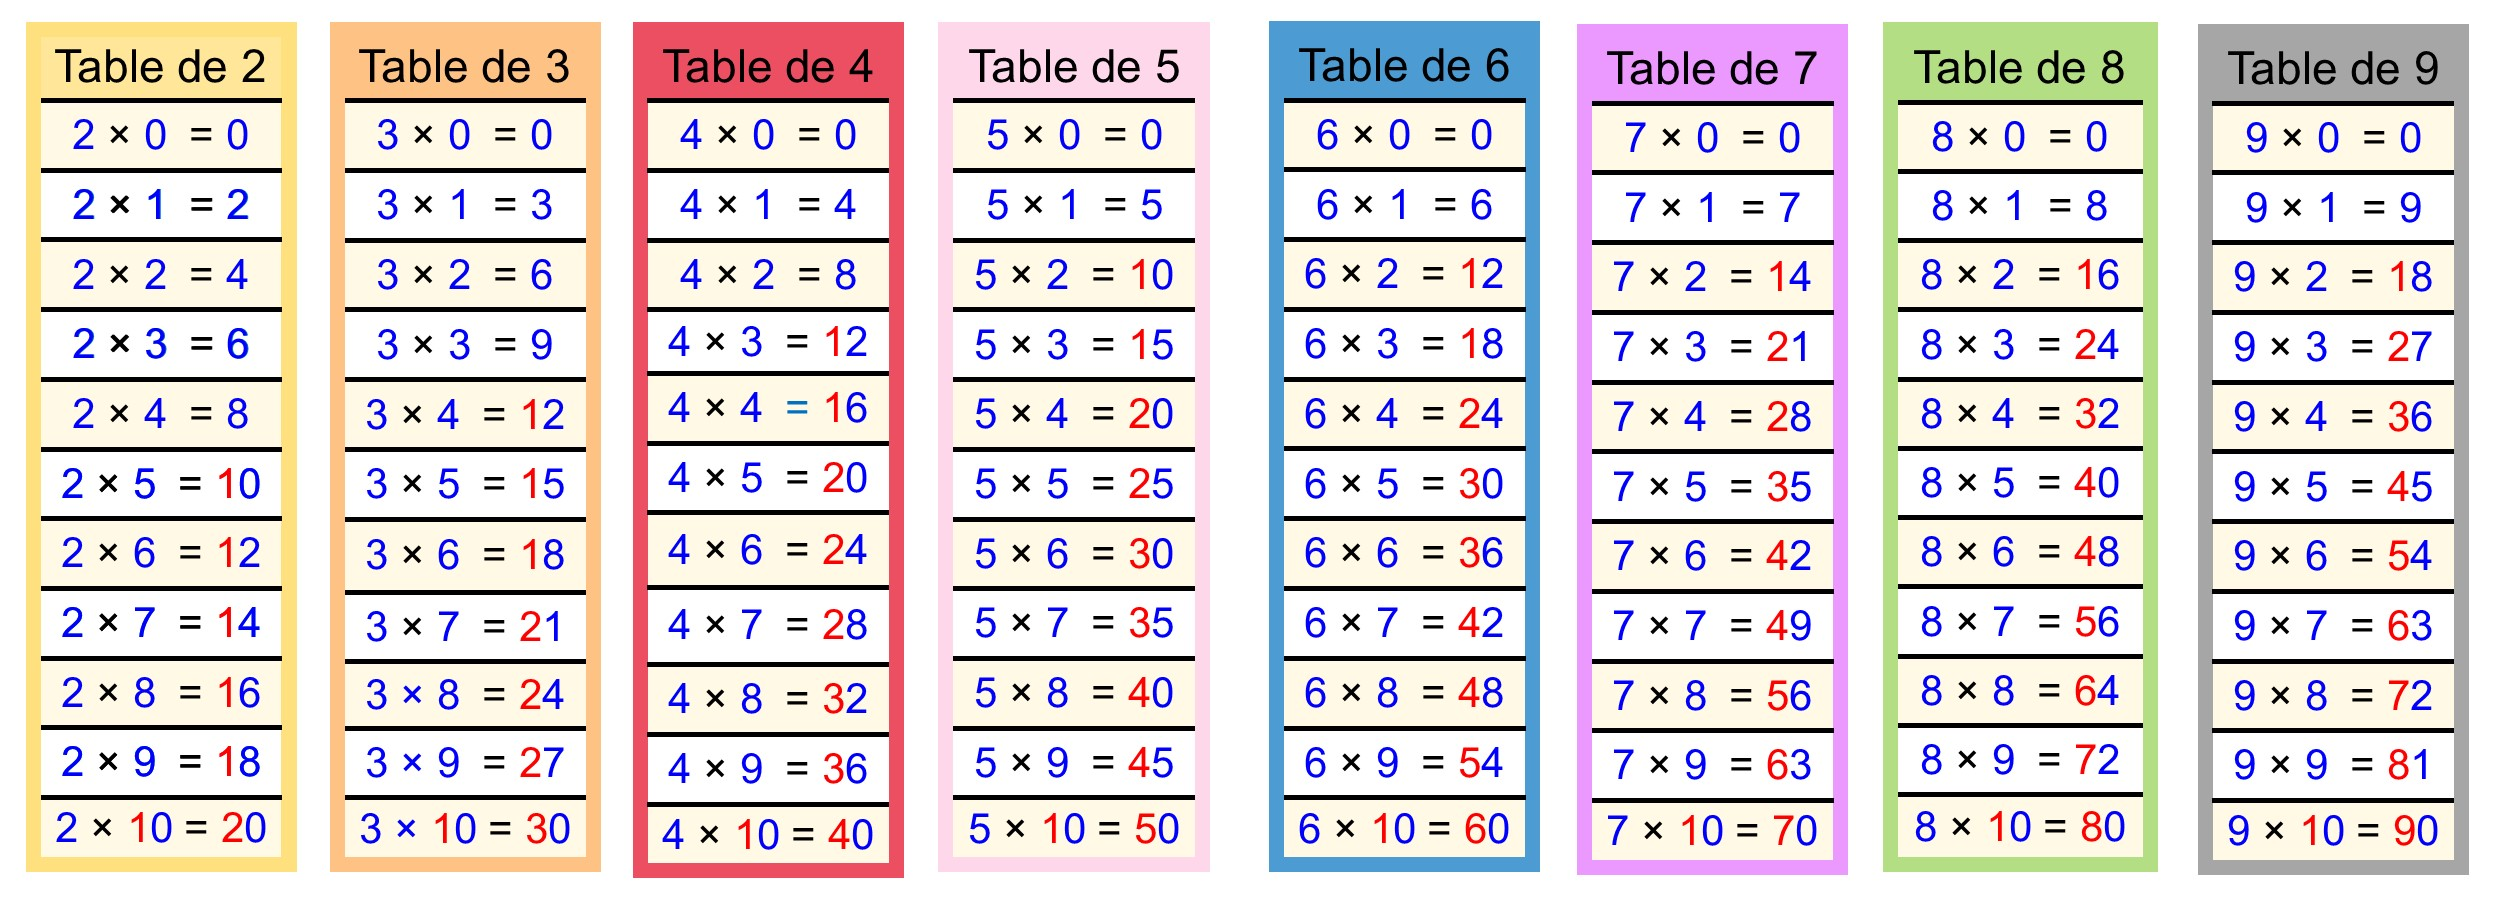 Calculer cartable fantastique - Table de multiplication par 4 ...